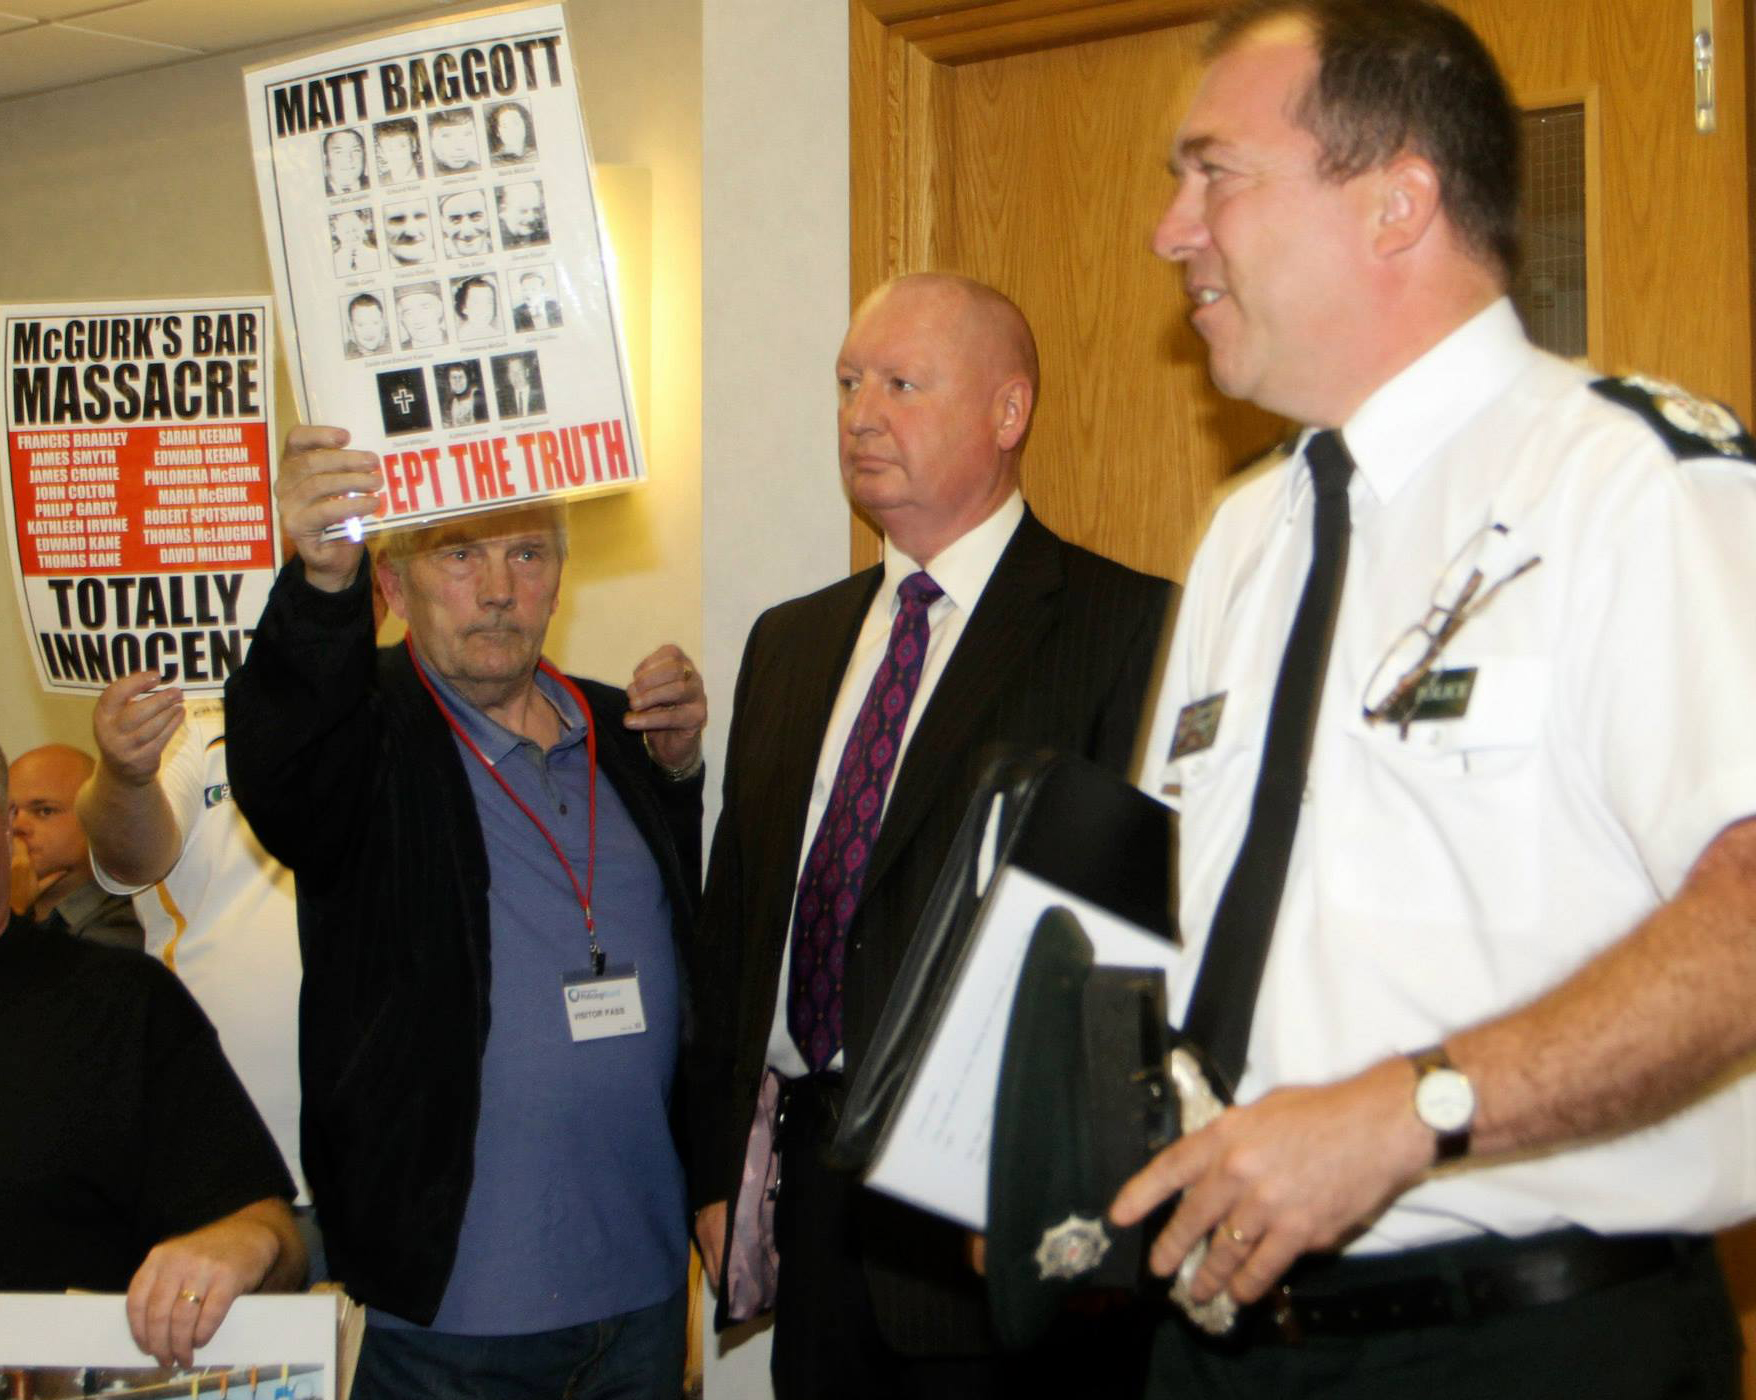 Chief Constable Matt Baggott oversaw the irrational HET report